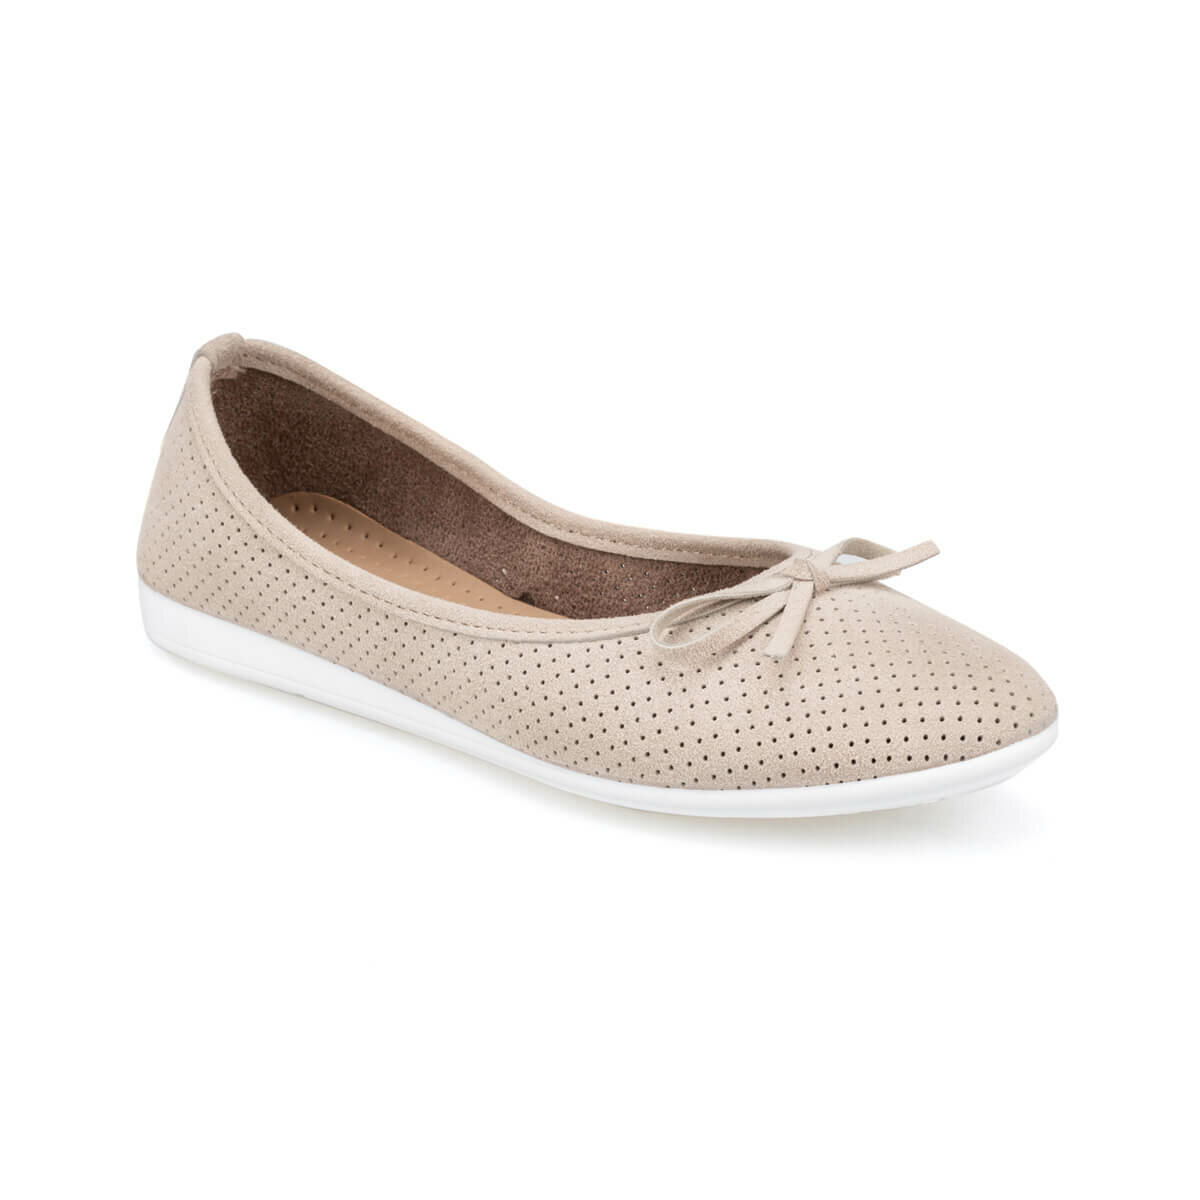 FLO 91.150742SZ Sand Color Women Ballerina Polaris